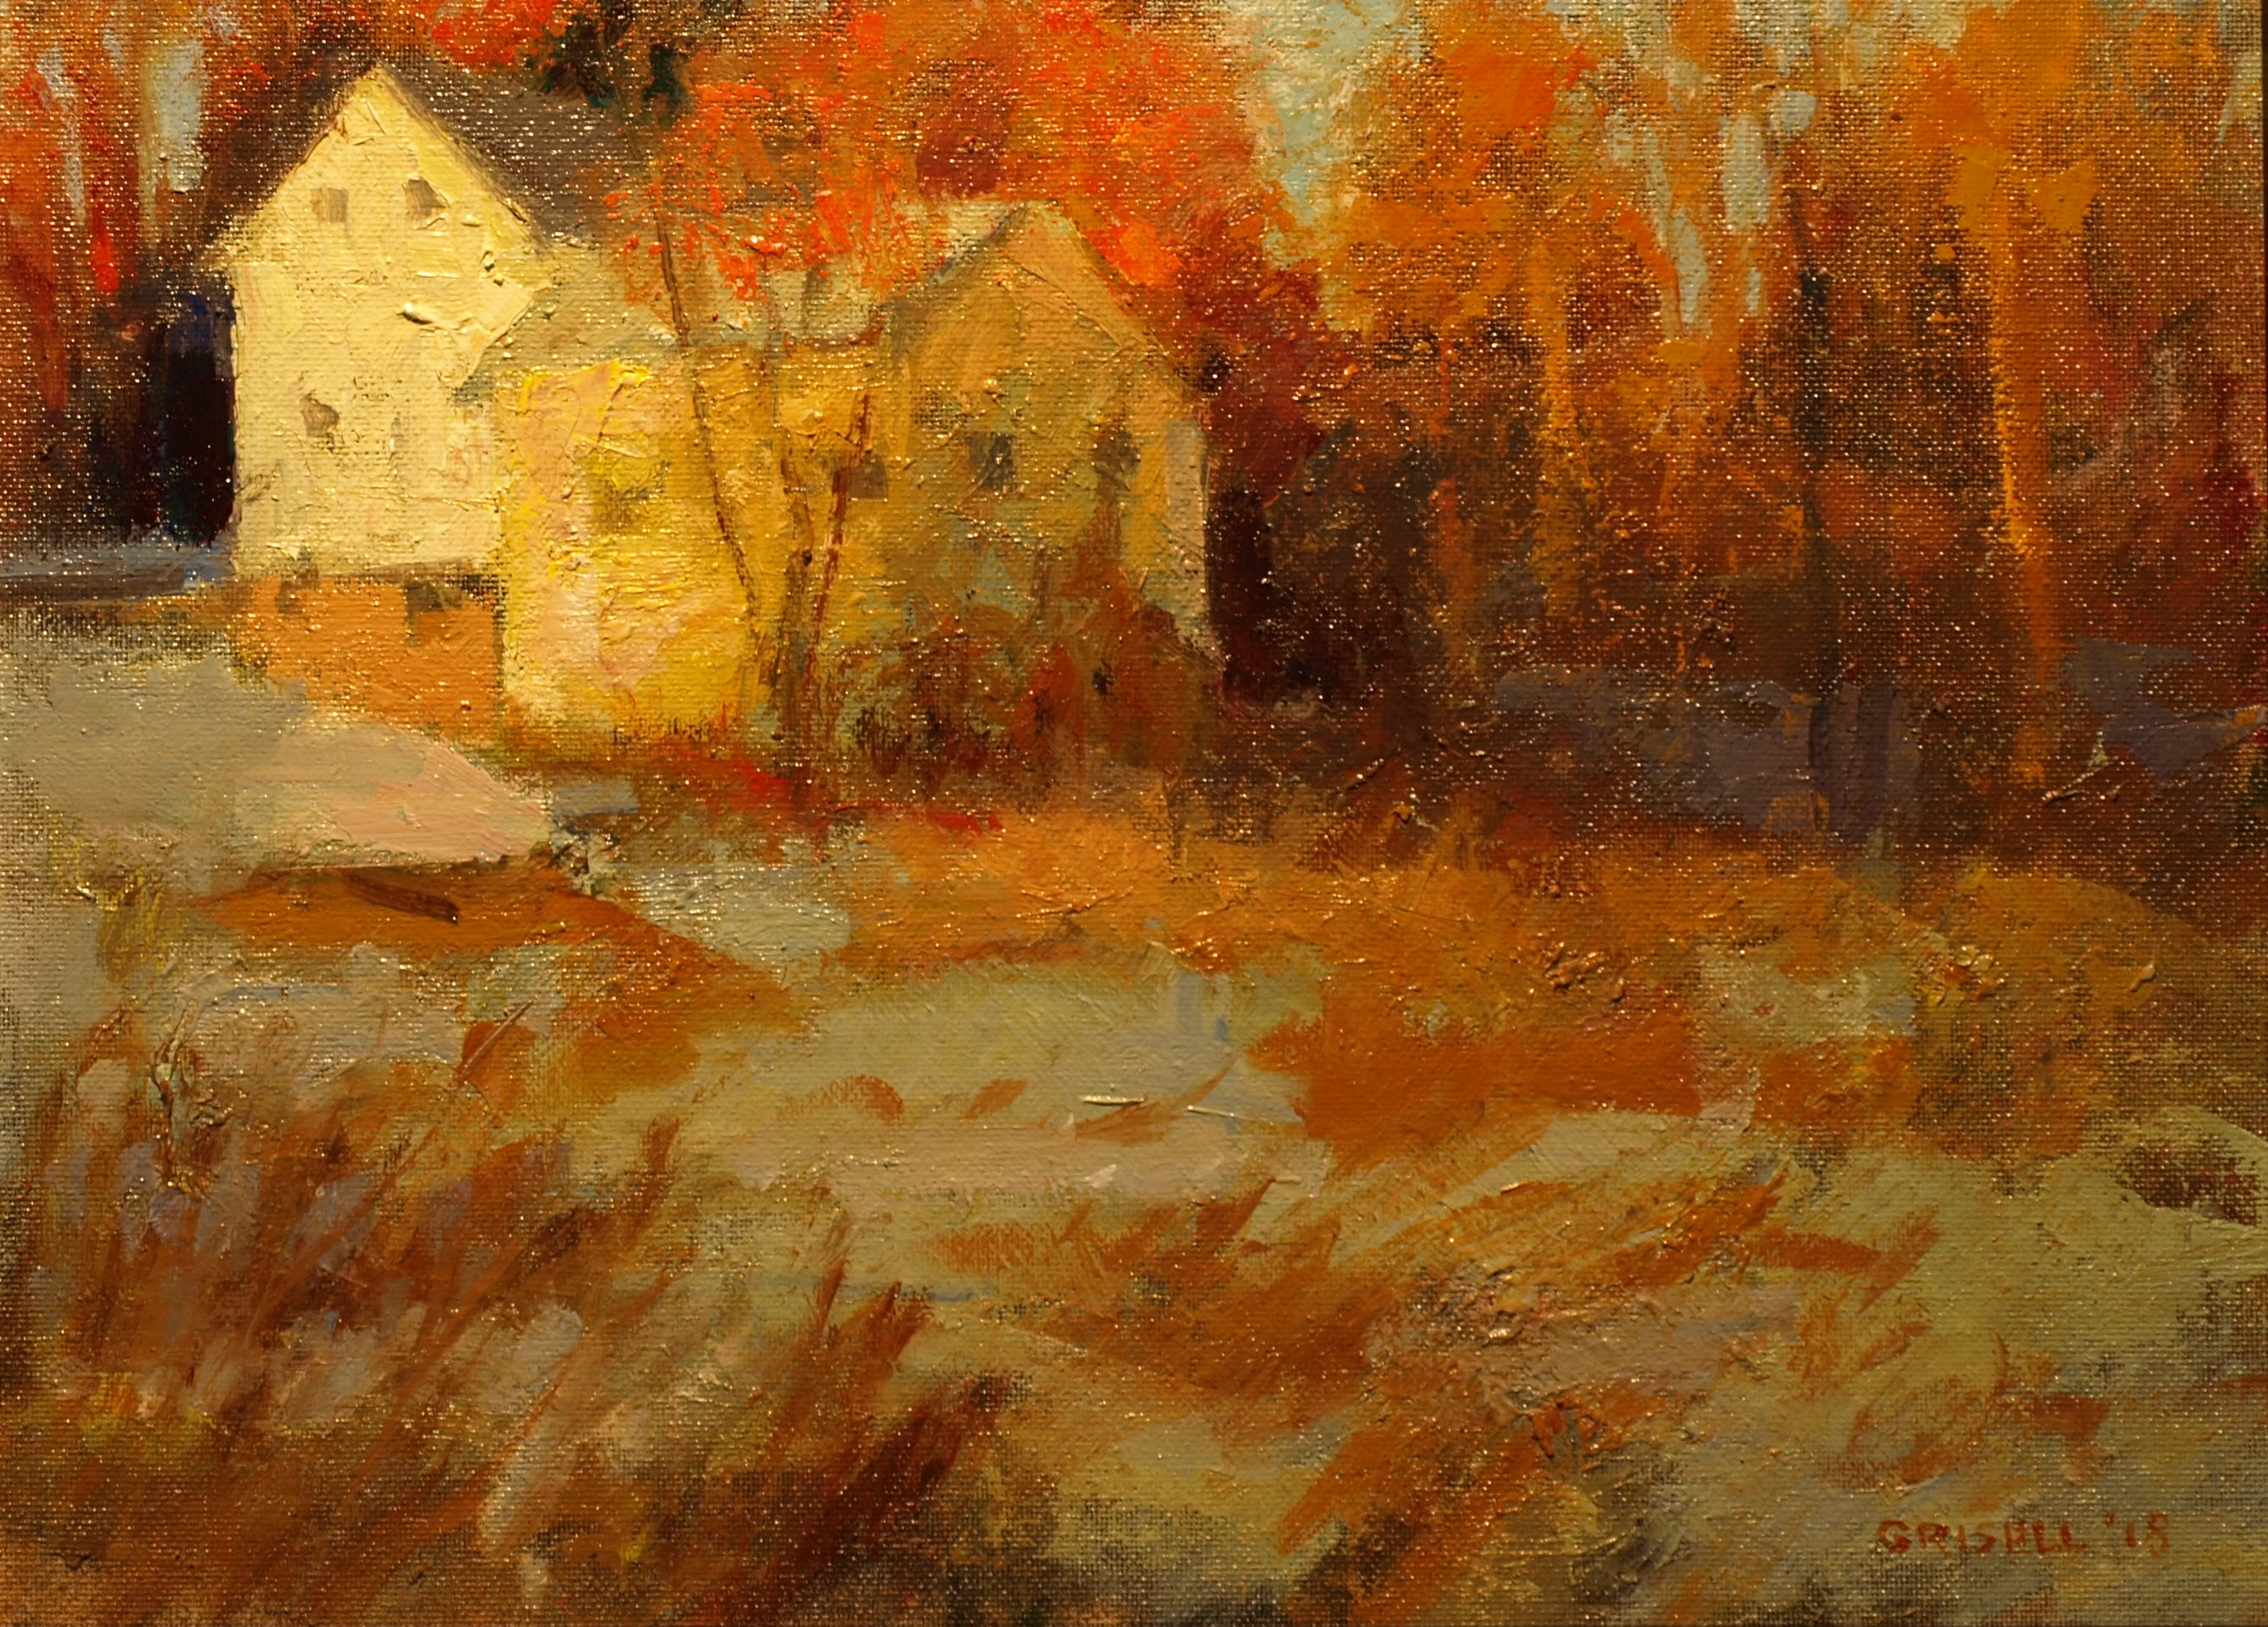 Late Afternoon Light, Oil on Panel, 12 x 16 Inches, by Susan Grisell, $300